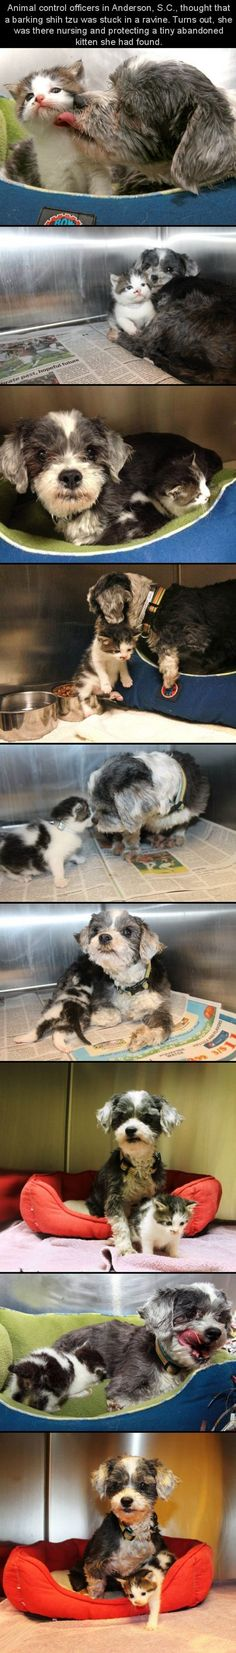 Dog Finds A Tiny Kitten, Risks Everything To Save Her... - Imgur